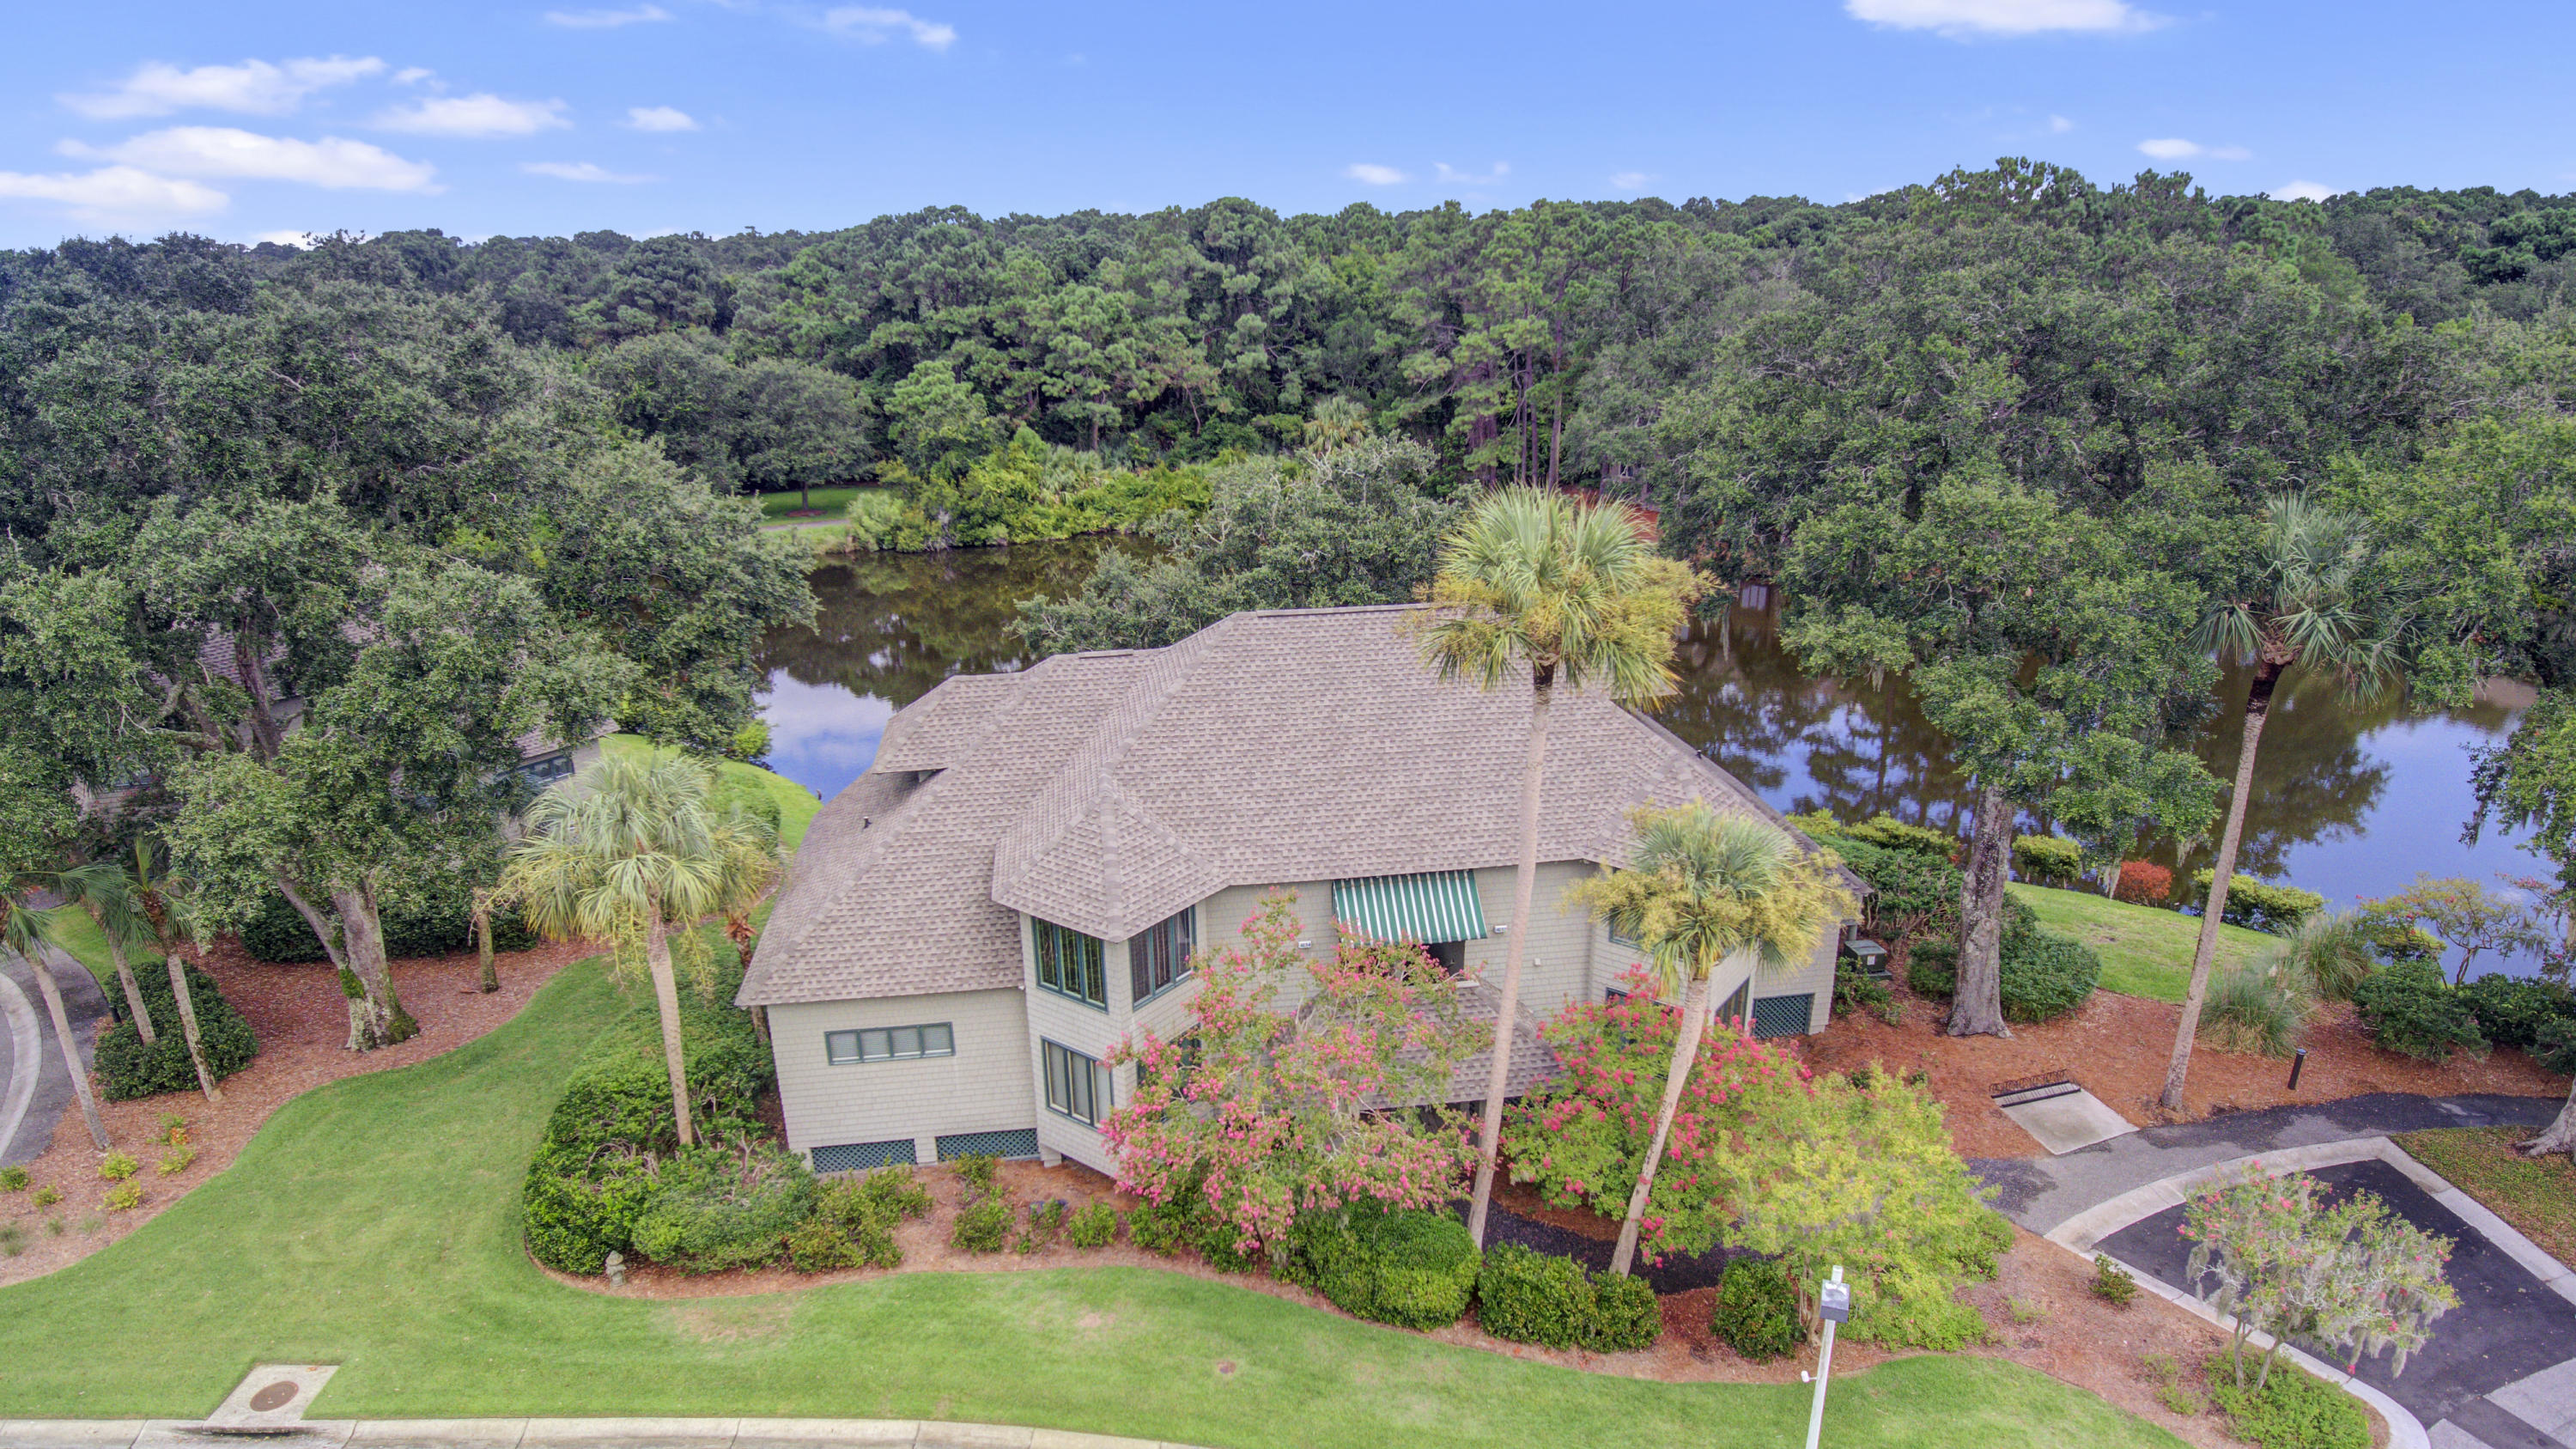 4691 Tennis Club Villas Kiawah Island, Sc 29455